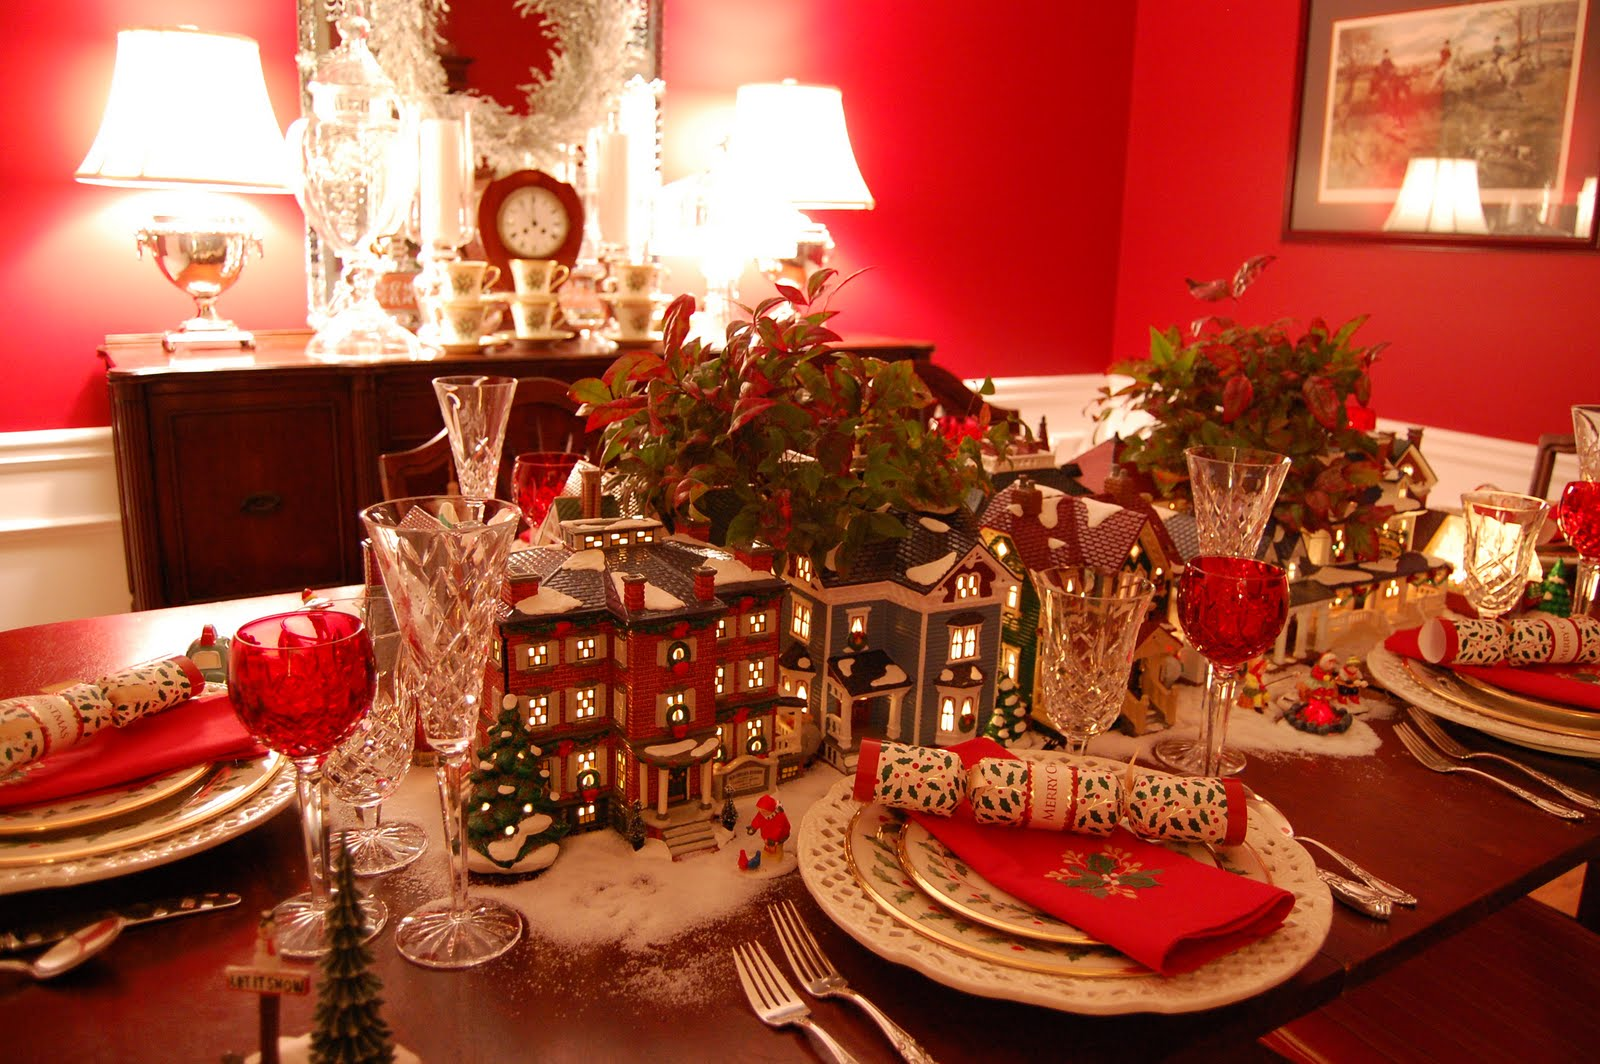 Merry Christmas to you and your family! & Christmas Table Setting Tablescape with Dept. 56 Lit Houses and ...